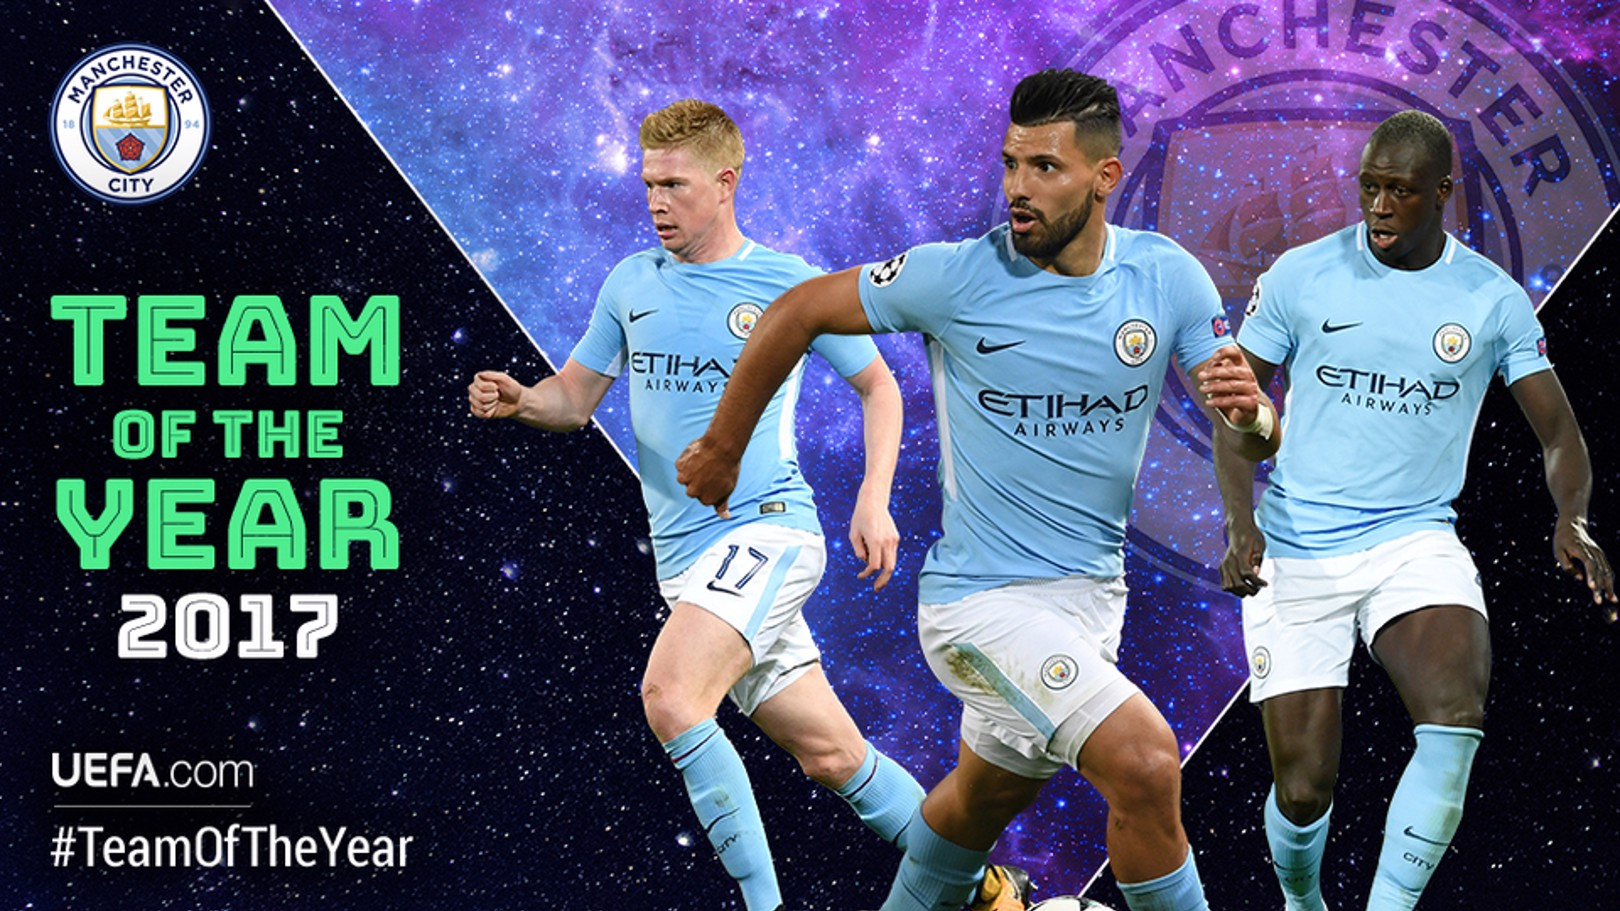 SHORTLISTED: Three of our players have made the shortlist of 50 for the Uefa Team of the Year.